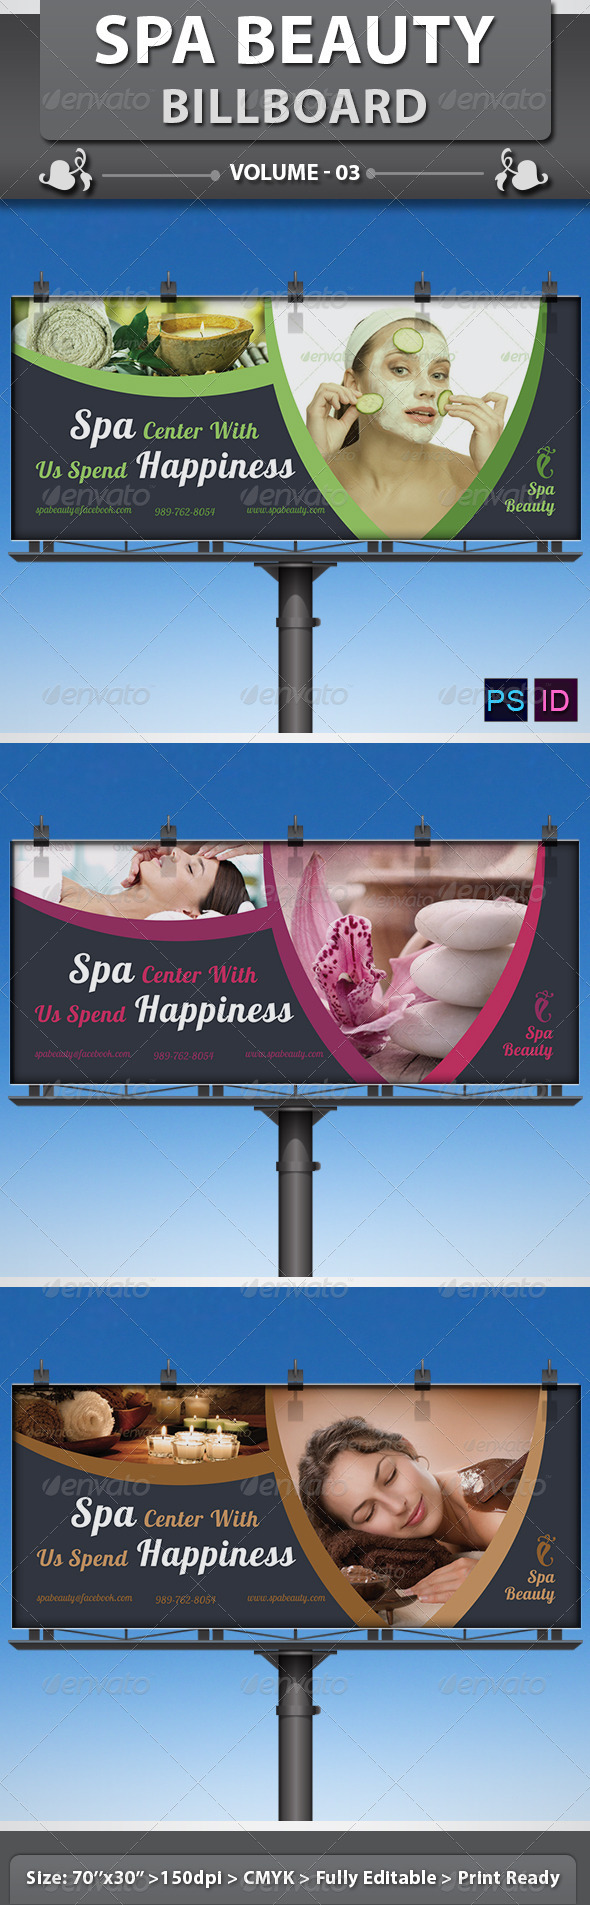 Spa Beauty Saloon Billboard Volume 5 By Dotnpix Graphicriver